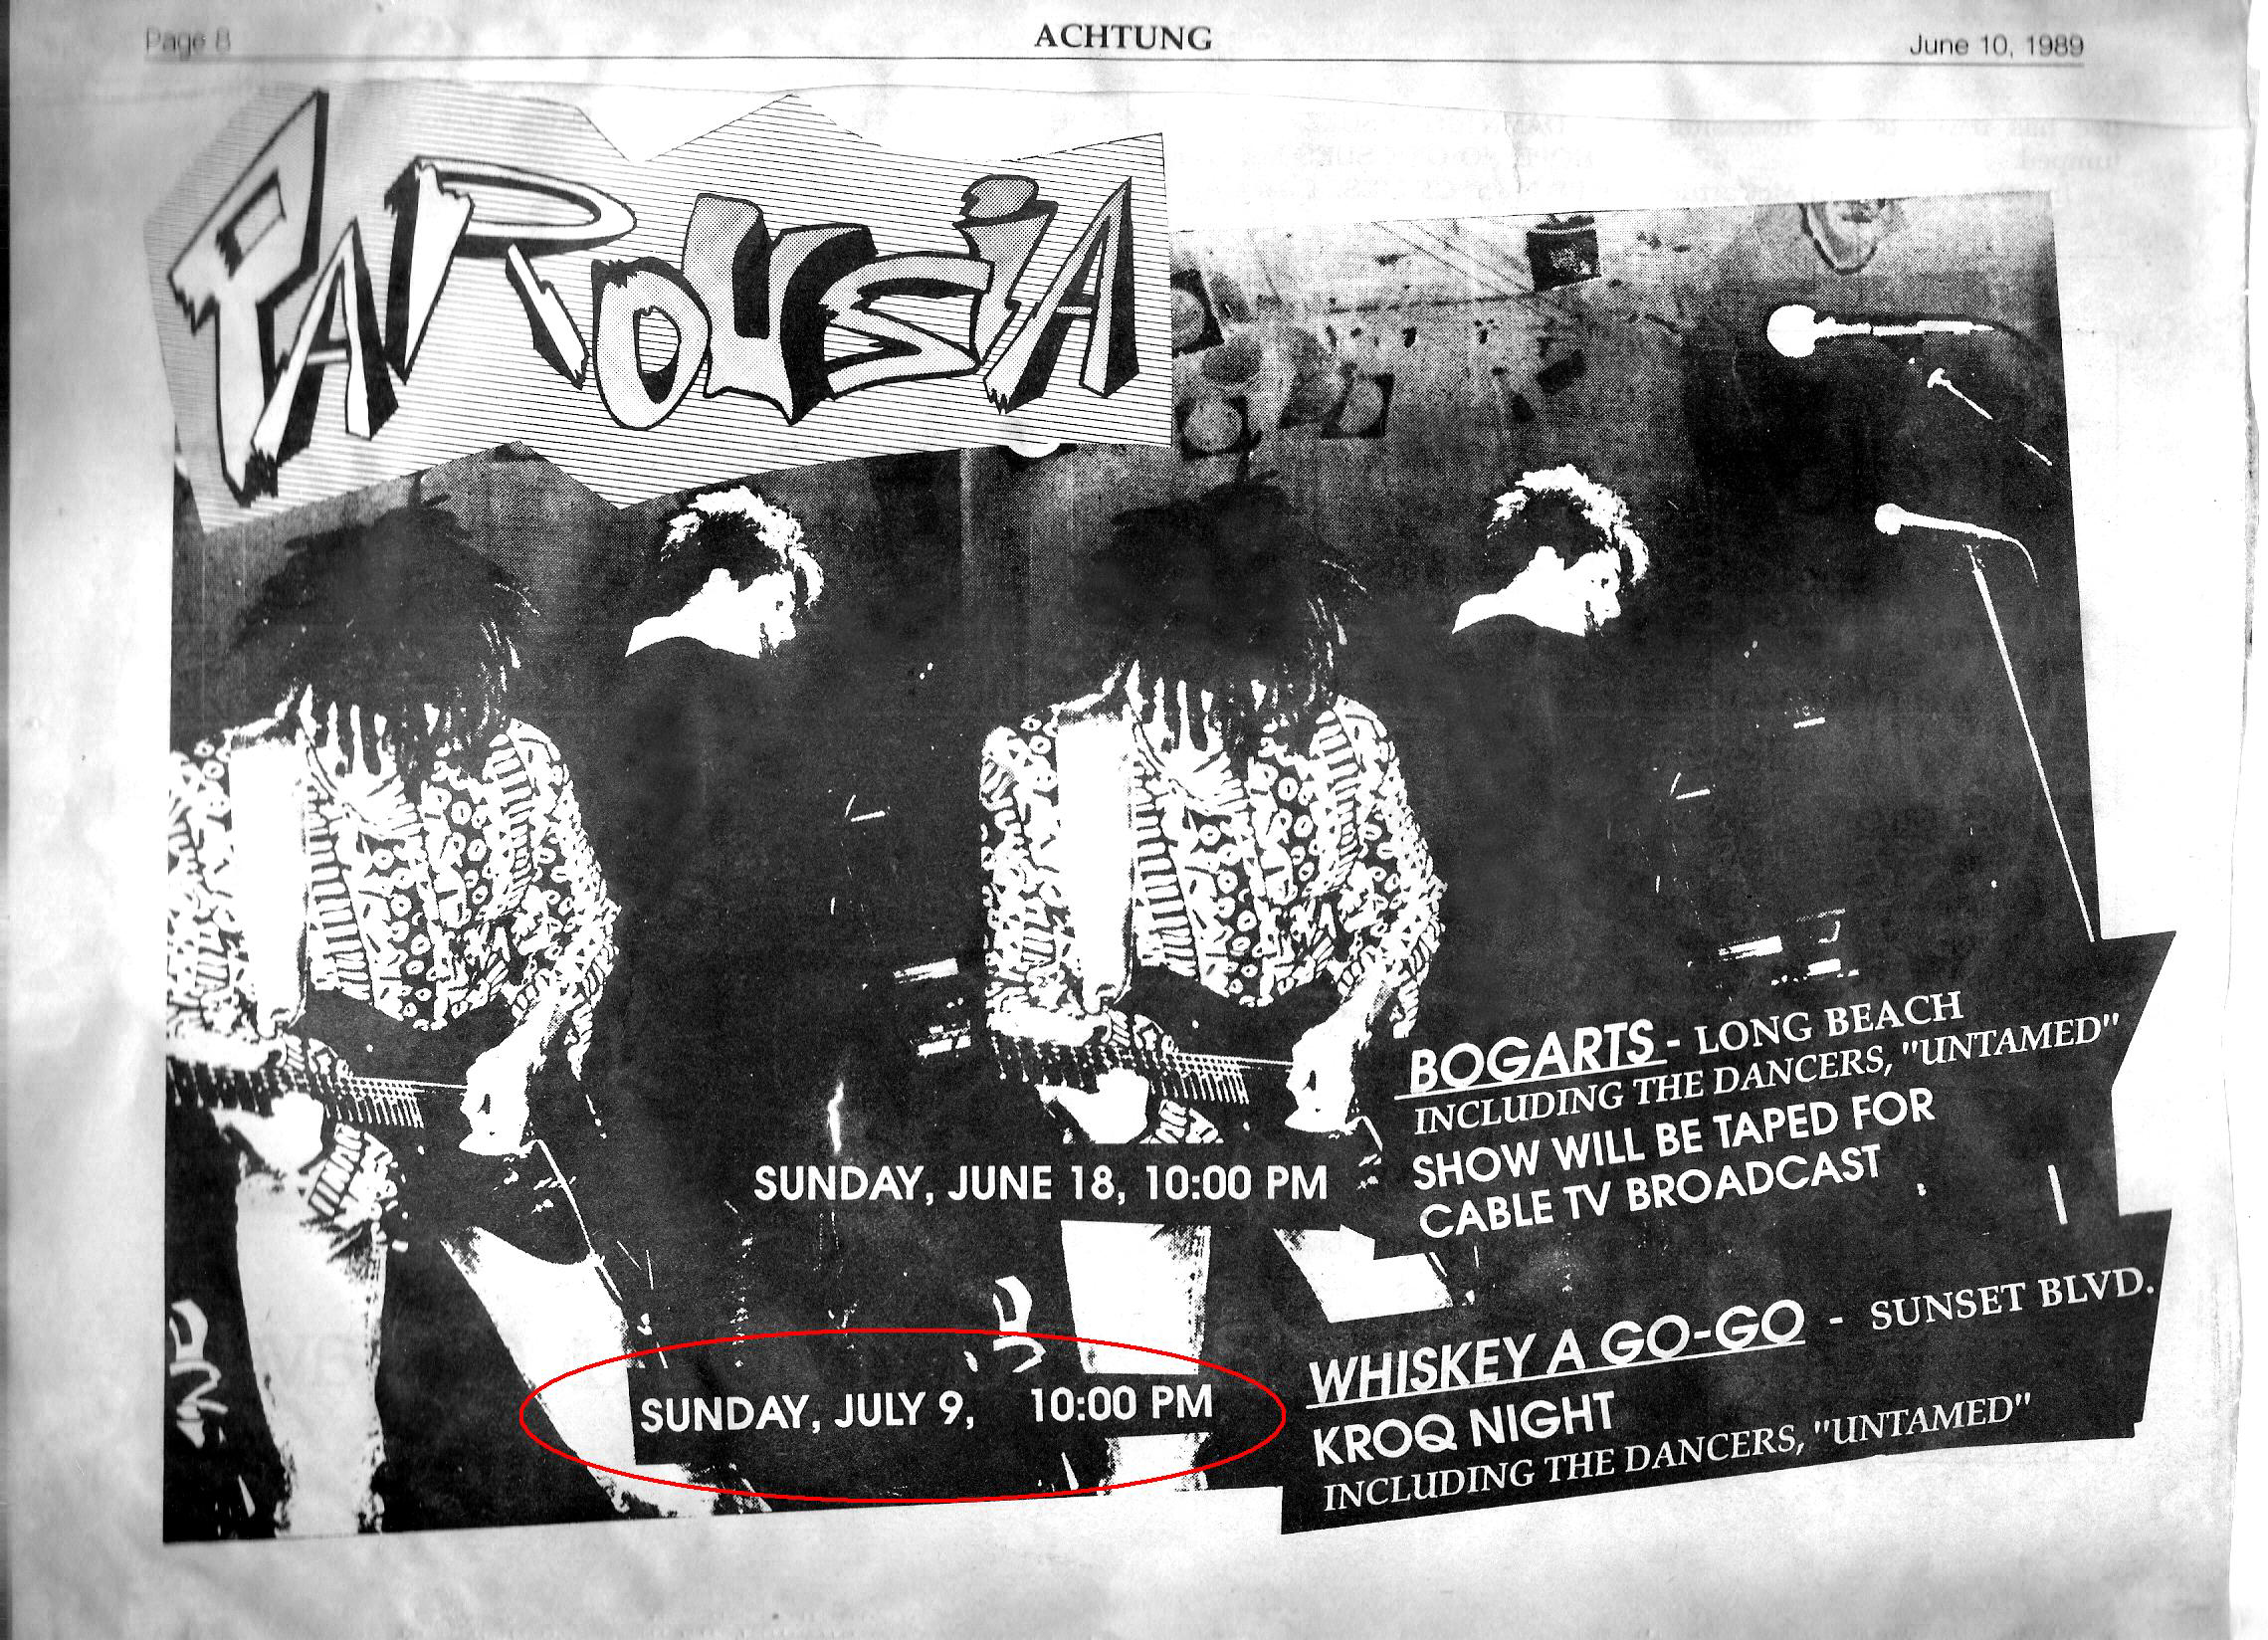 Achtung! Magazine - Parousia at the Whisky a-Go-Go Sunday July 9th, 1989